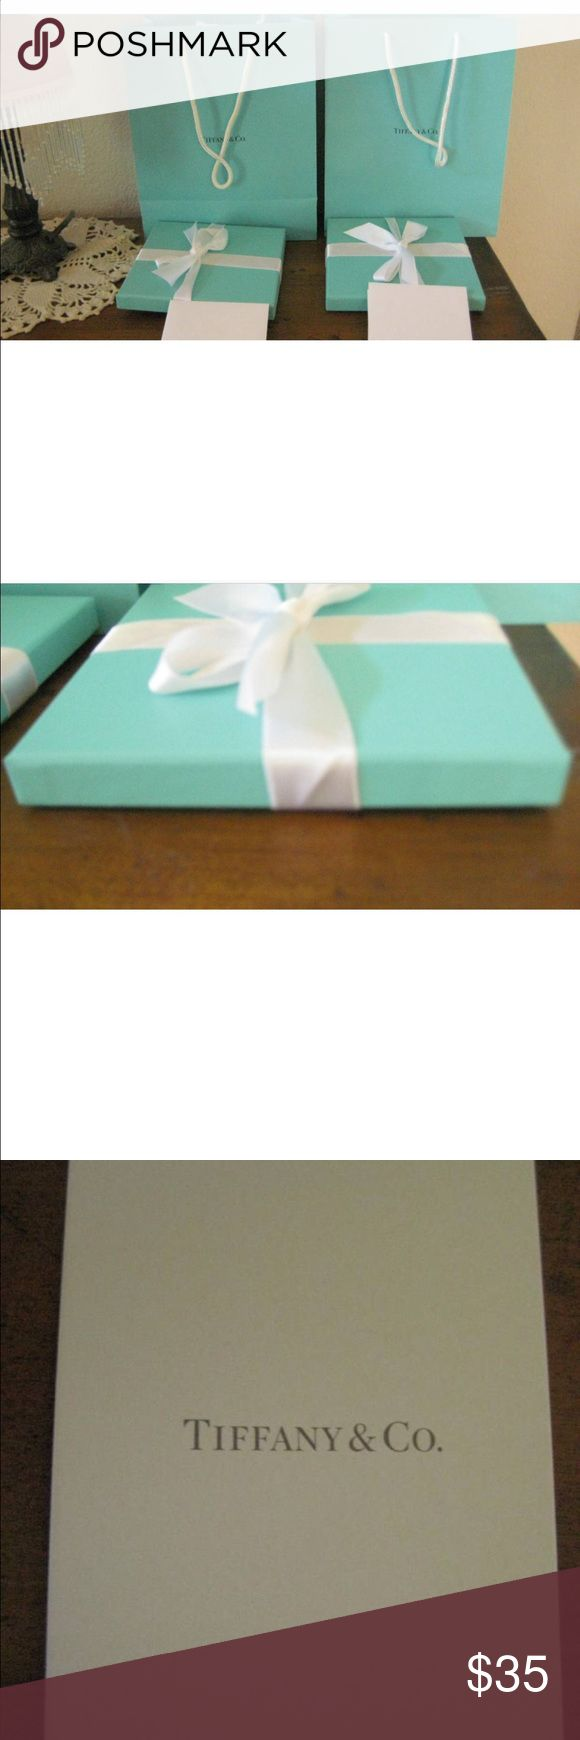 Set of 2 Authentic Tiffany & Co. Sales Packaging This is a set of two Authentic Tiffany and Co. sales bags. They each come with a square tiffany blue box wrapped with white satin ribbon from Tiffany's. They each also come with a small envelope and card inside for you to write whatever you want on it. The card you can write on is embossed with the Tiffany and Co. logo. They are in perfect condition. Tiffany & Co. Other